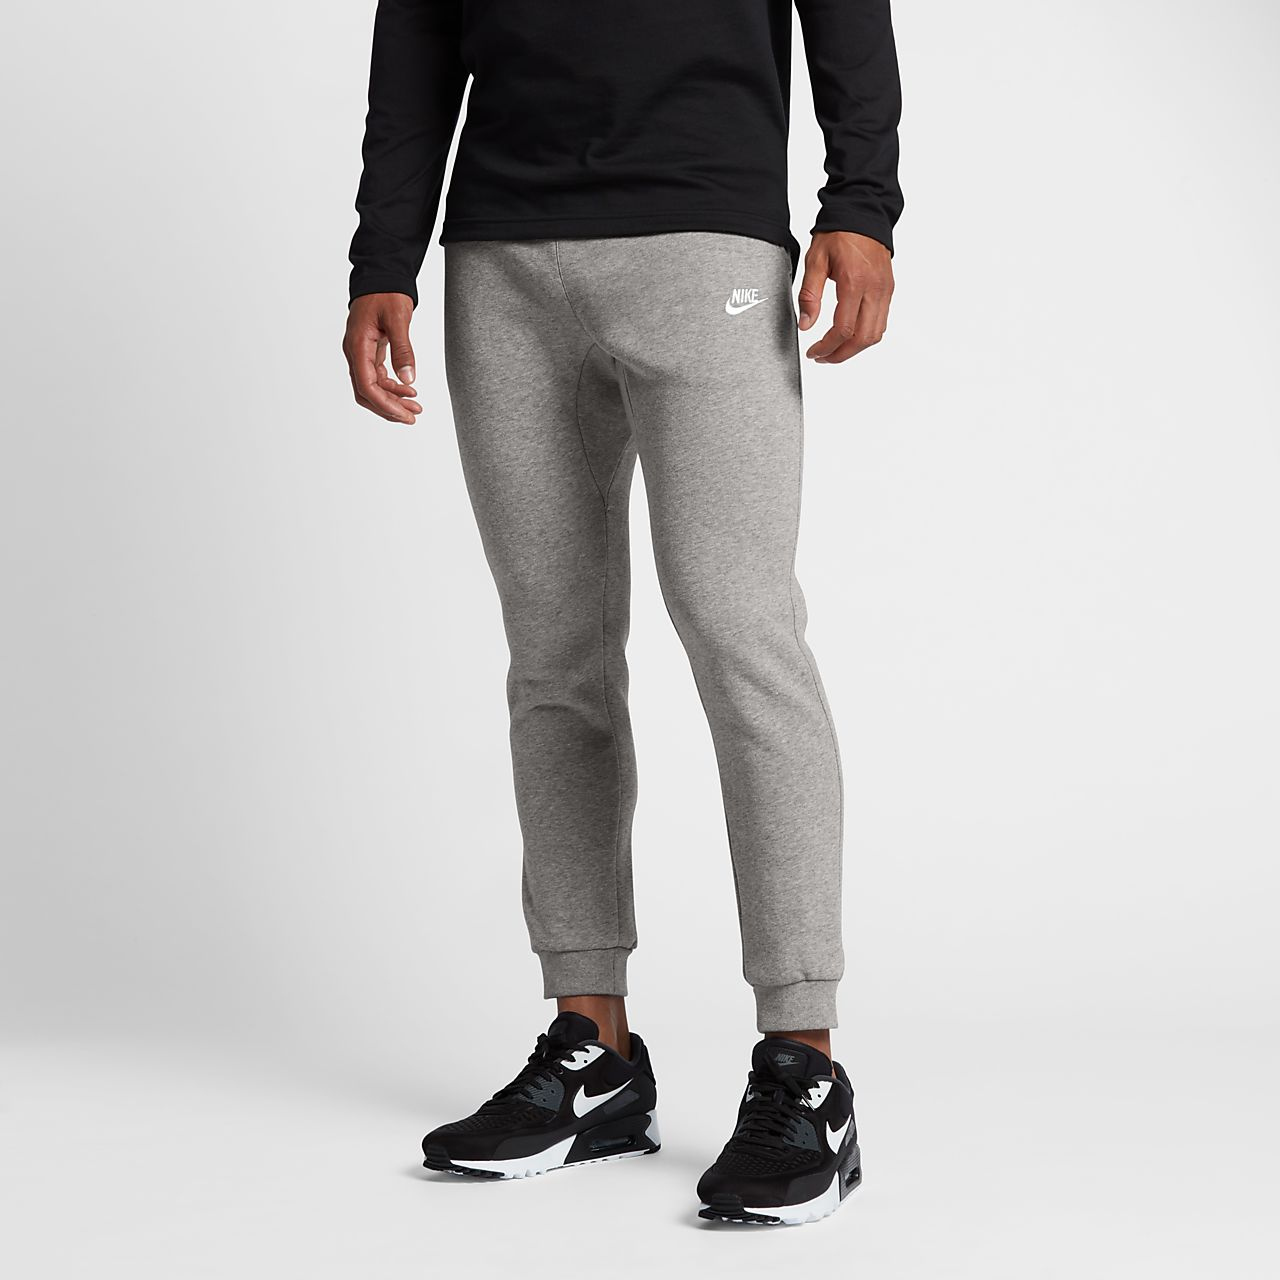 detailed look df102 3d2c5 Low Resolution Nike Sportswear Herren-Jogginghose Nike Sportswear Herren- Jogginghose